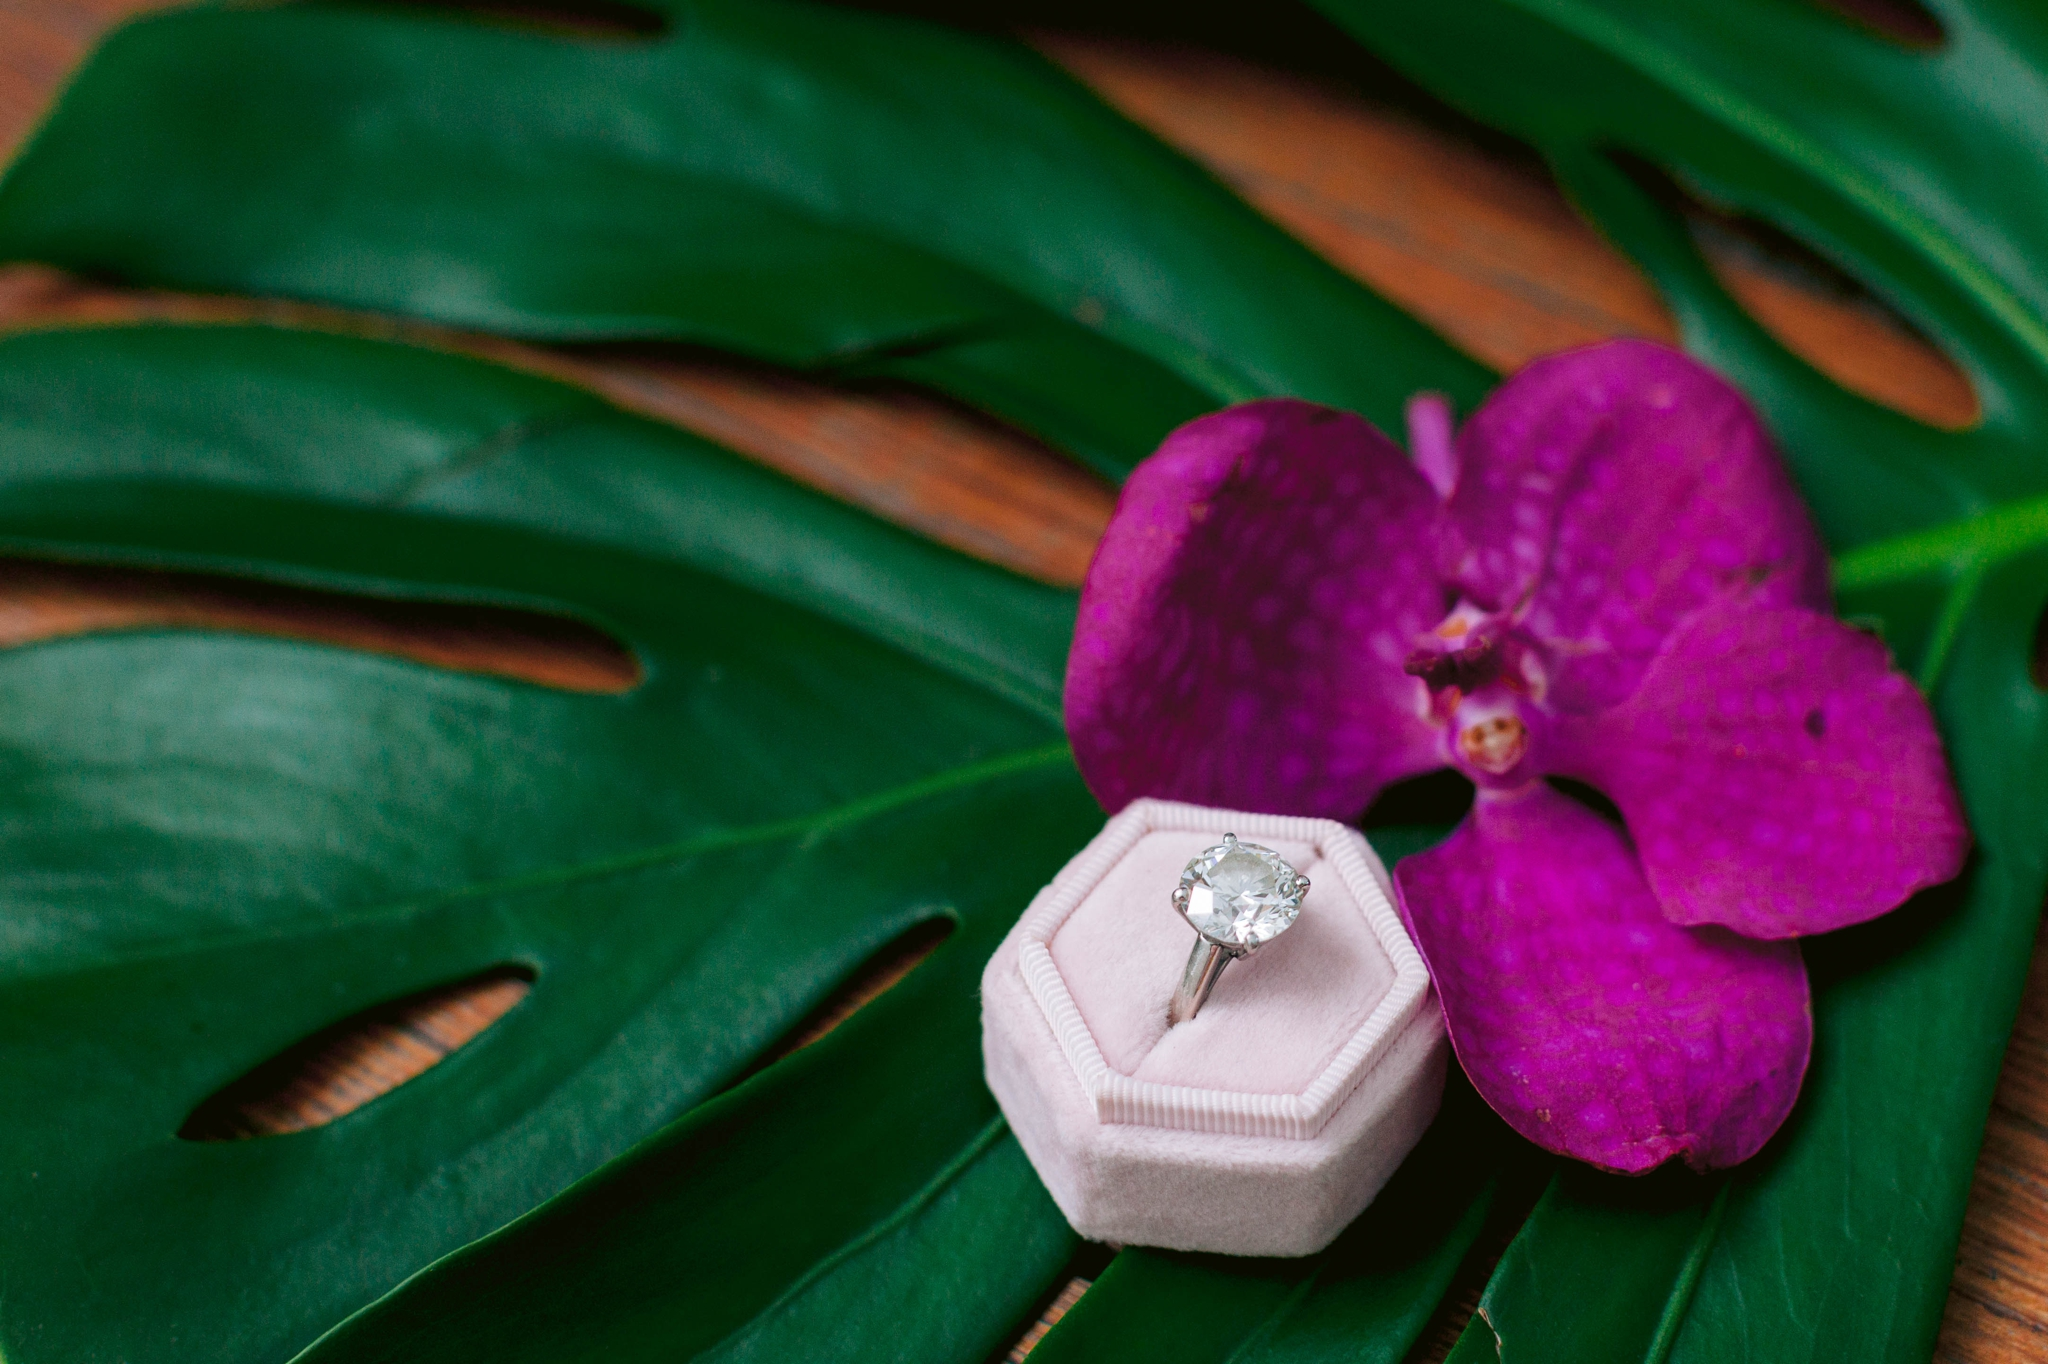 Huge Diamond Ring with a tropical leave and hibiscus flower for your Hawaii Wedding -  Navy, Green, Gold and Berry colored Tropical Wedding Inspiration for your Wedding in Hawaii! - Honolulu, Oahu, Hawaii Photographer - Fine Art Film Photography - Light and Airy